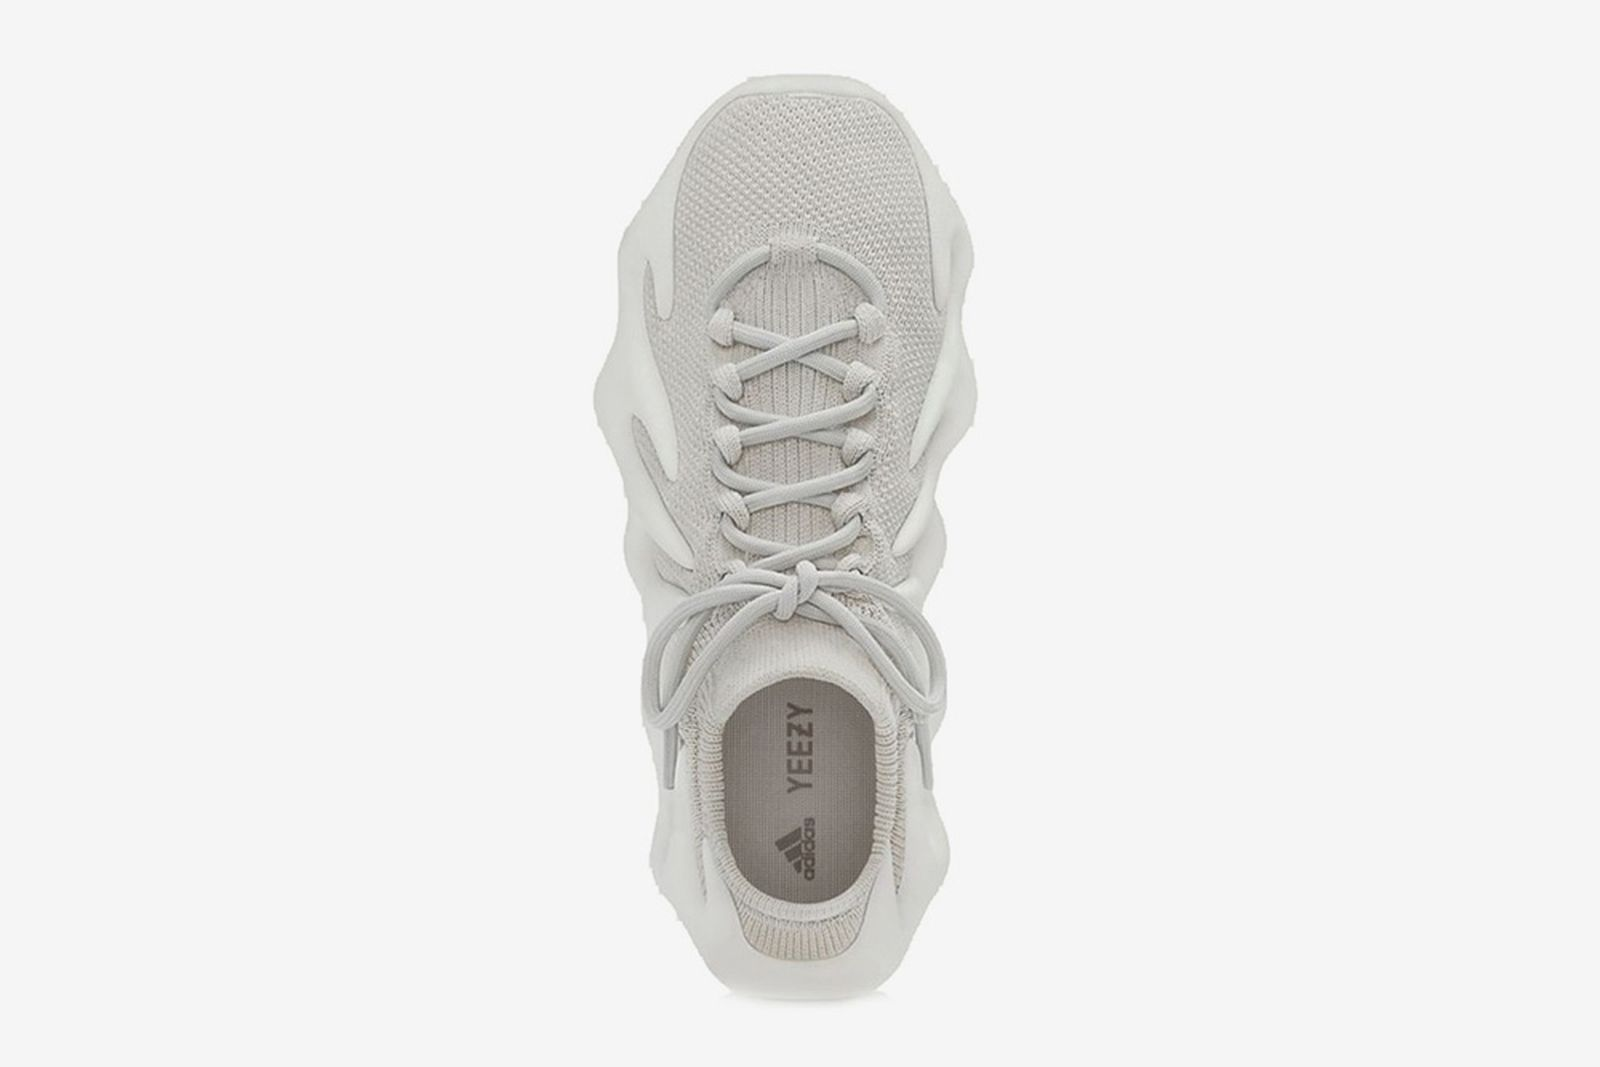 adidas-yeezy-450-release-date-price-03